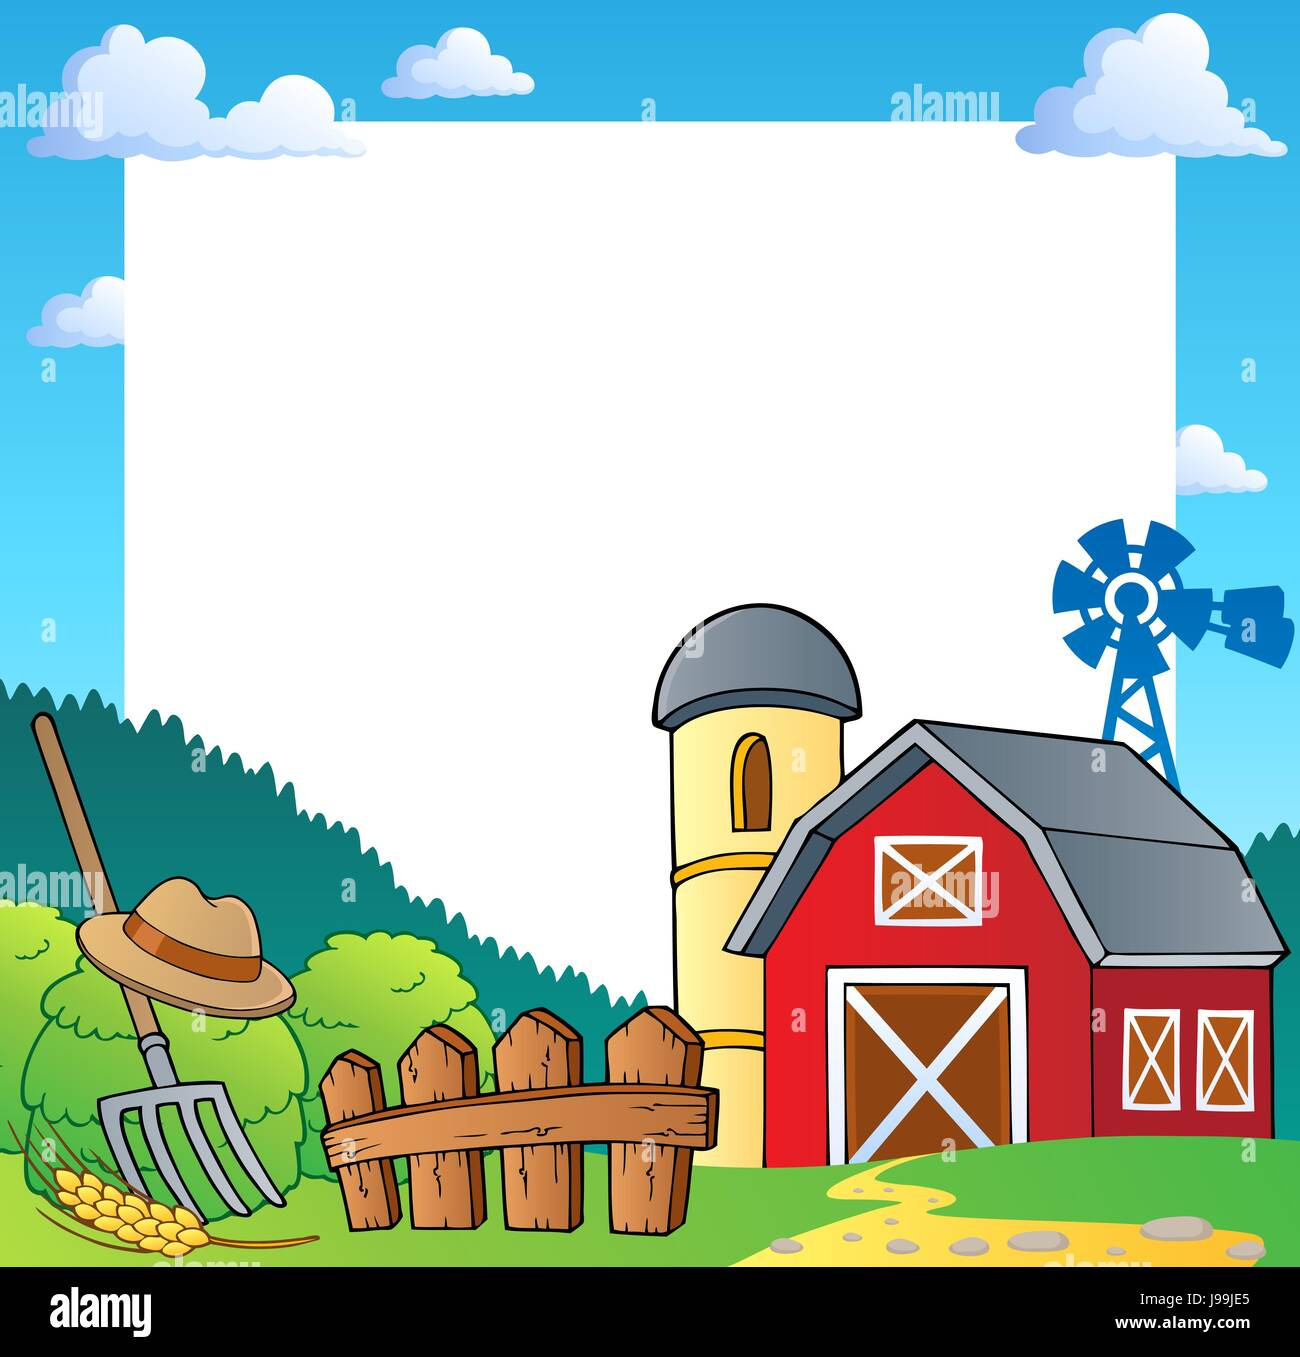 Farmyard Barn Cartoon Stockfotos & Farmyard Barn Cartoon Bilder - Alamy